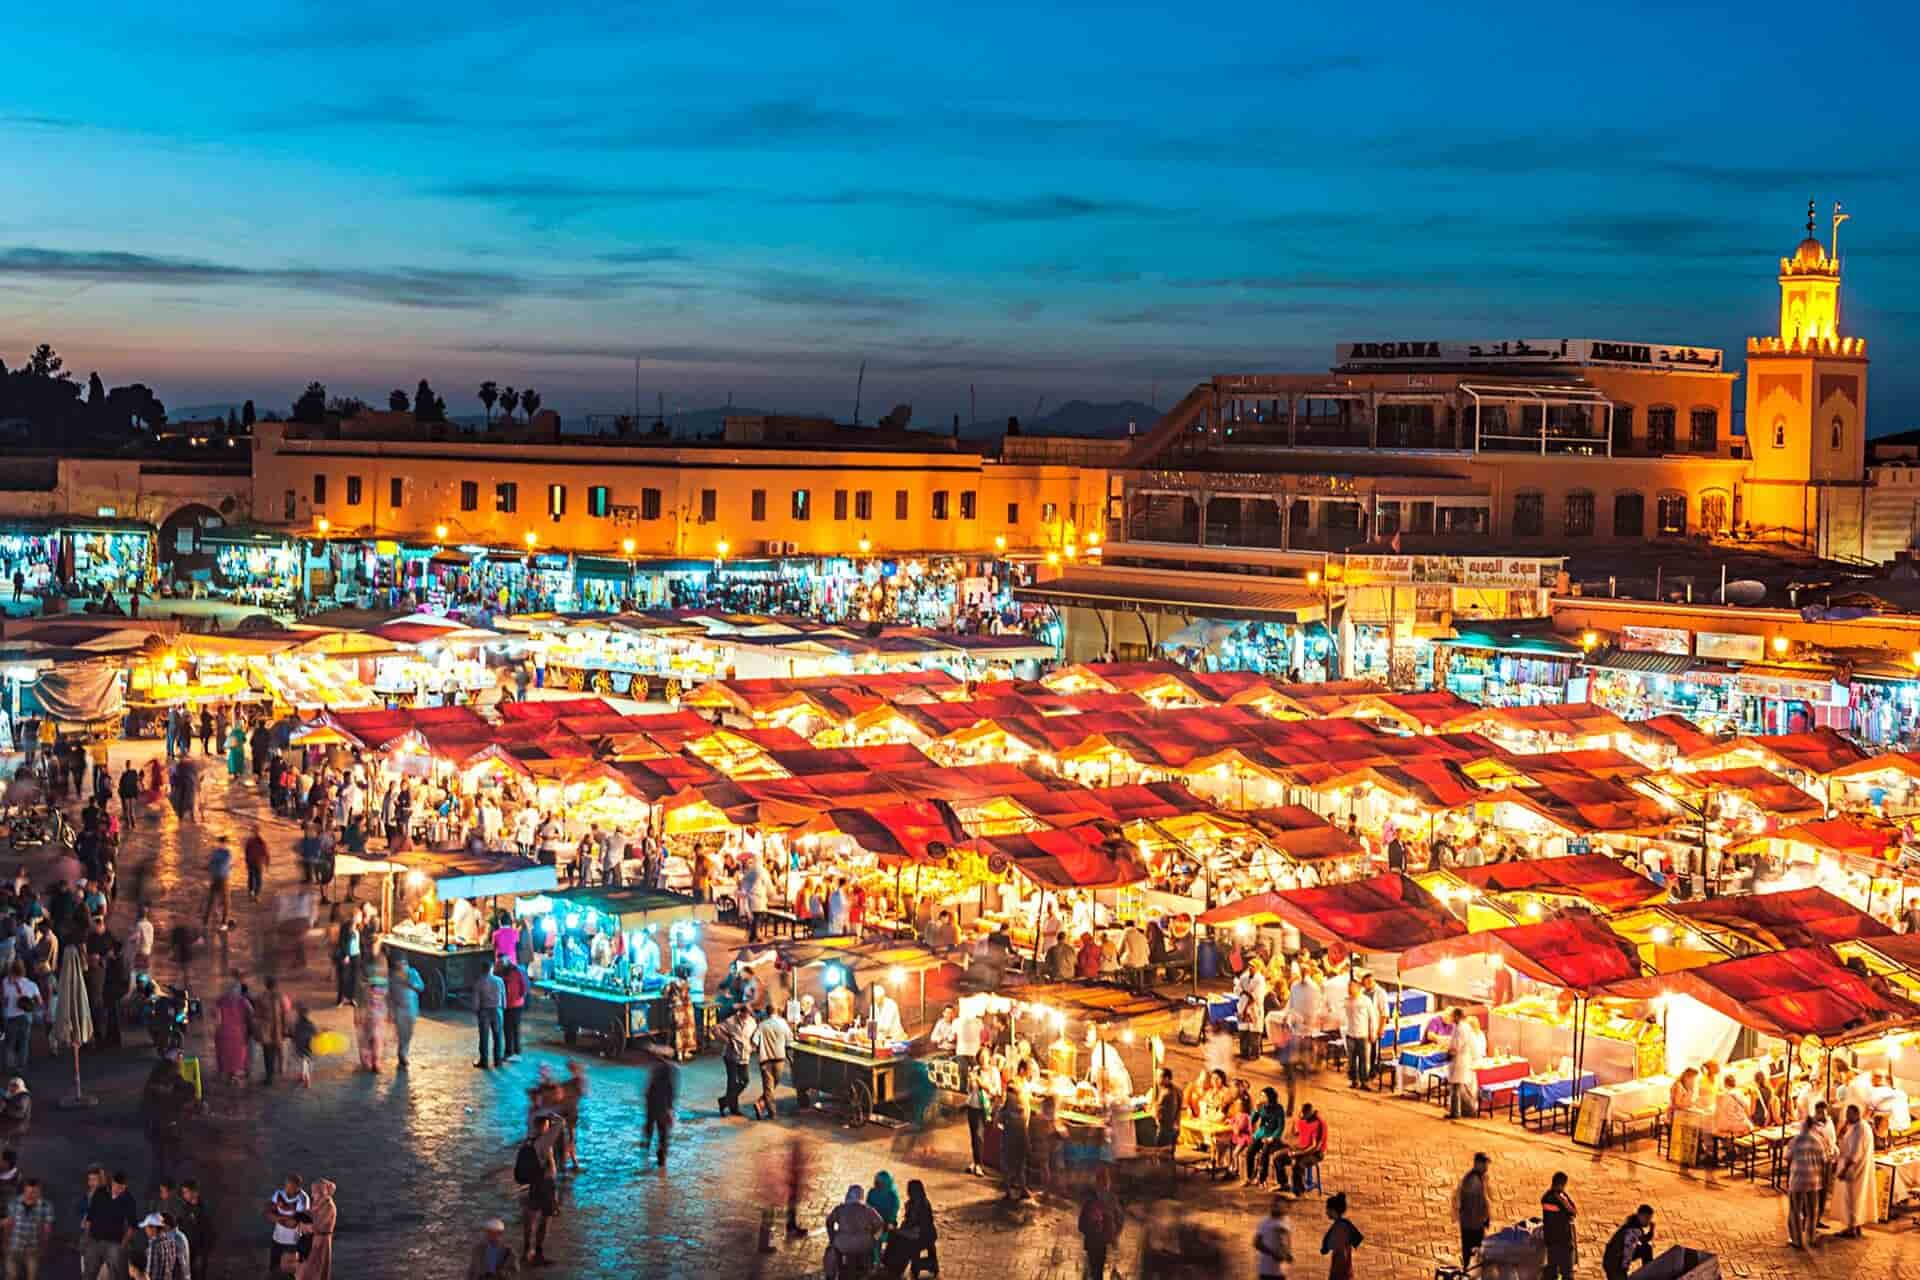 Shop in the Jemaa el-Fnaa